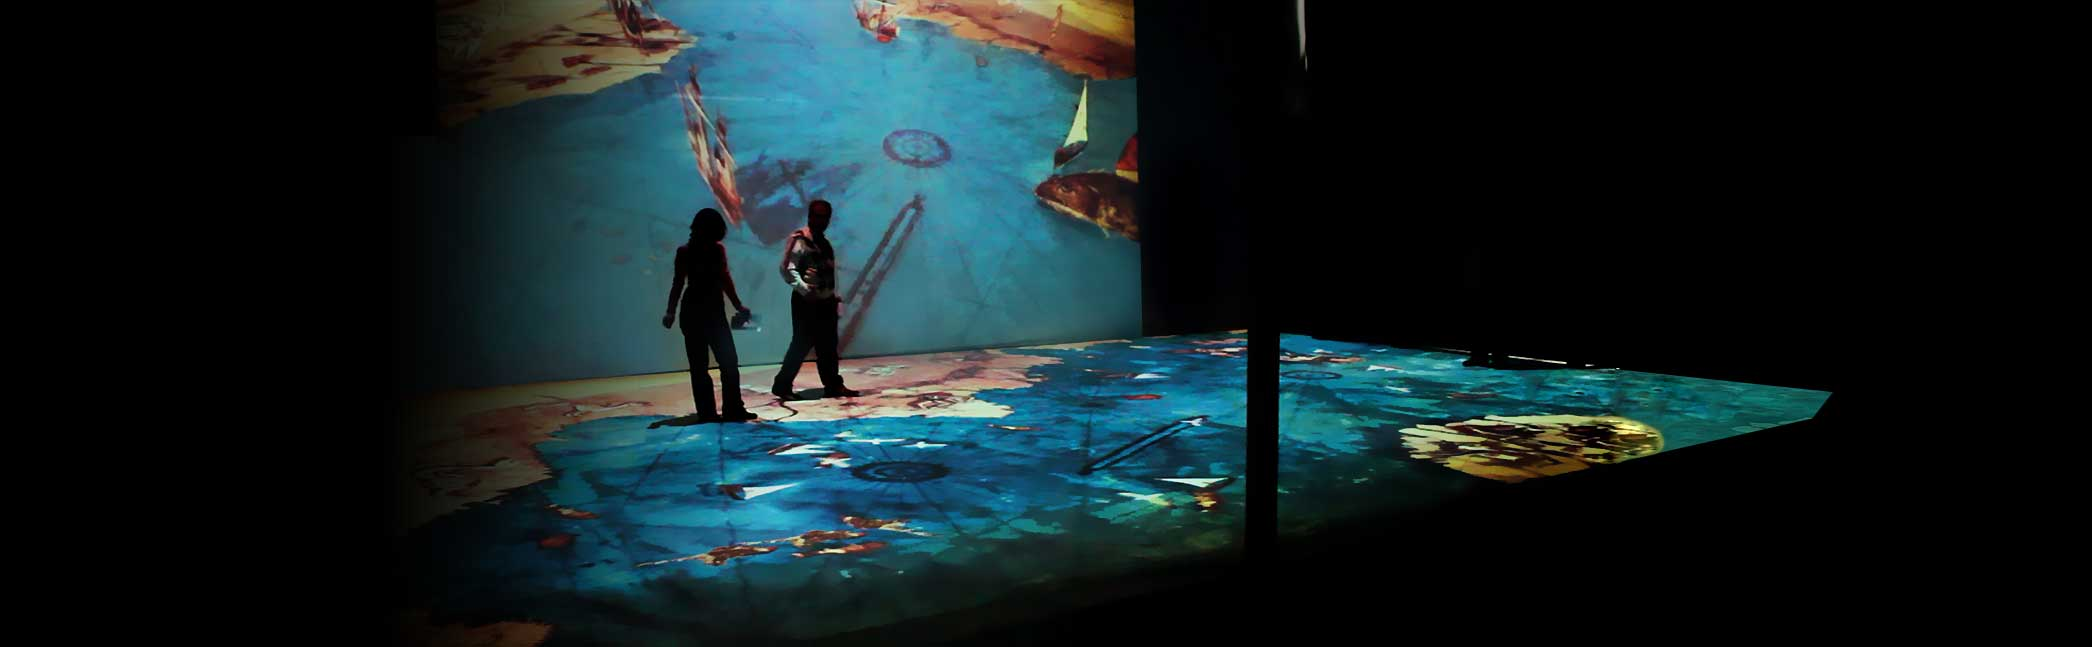 Giant Projection Mapping Exhibition